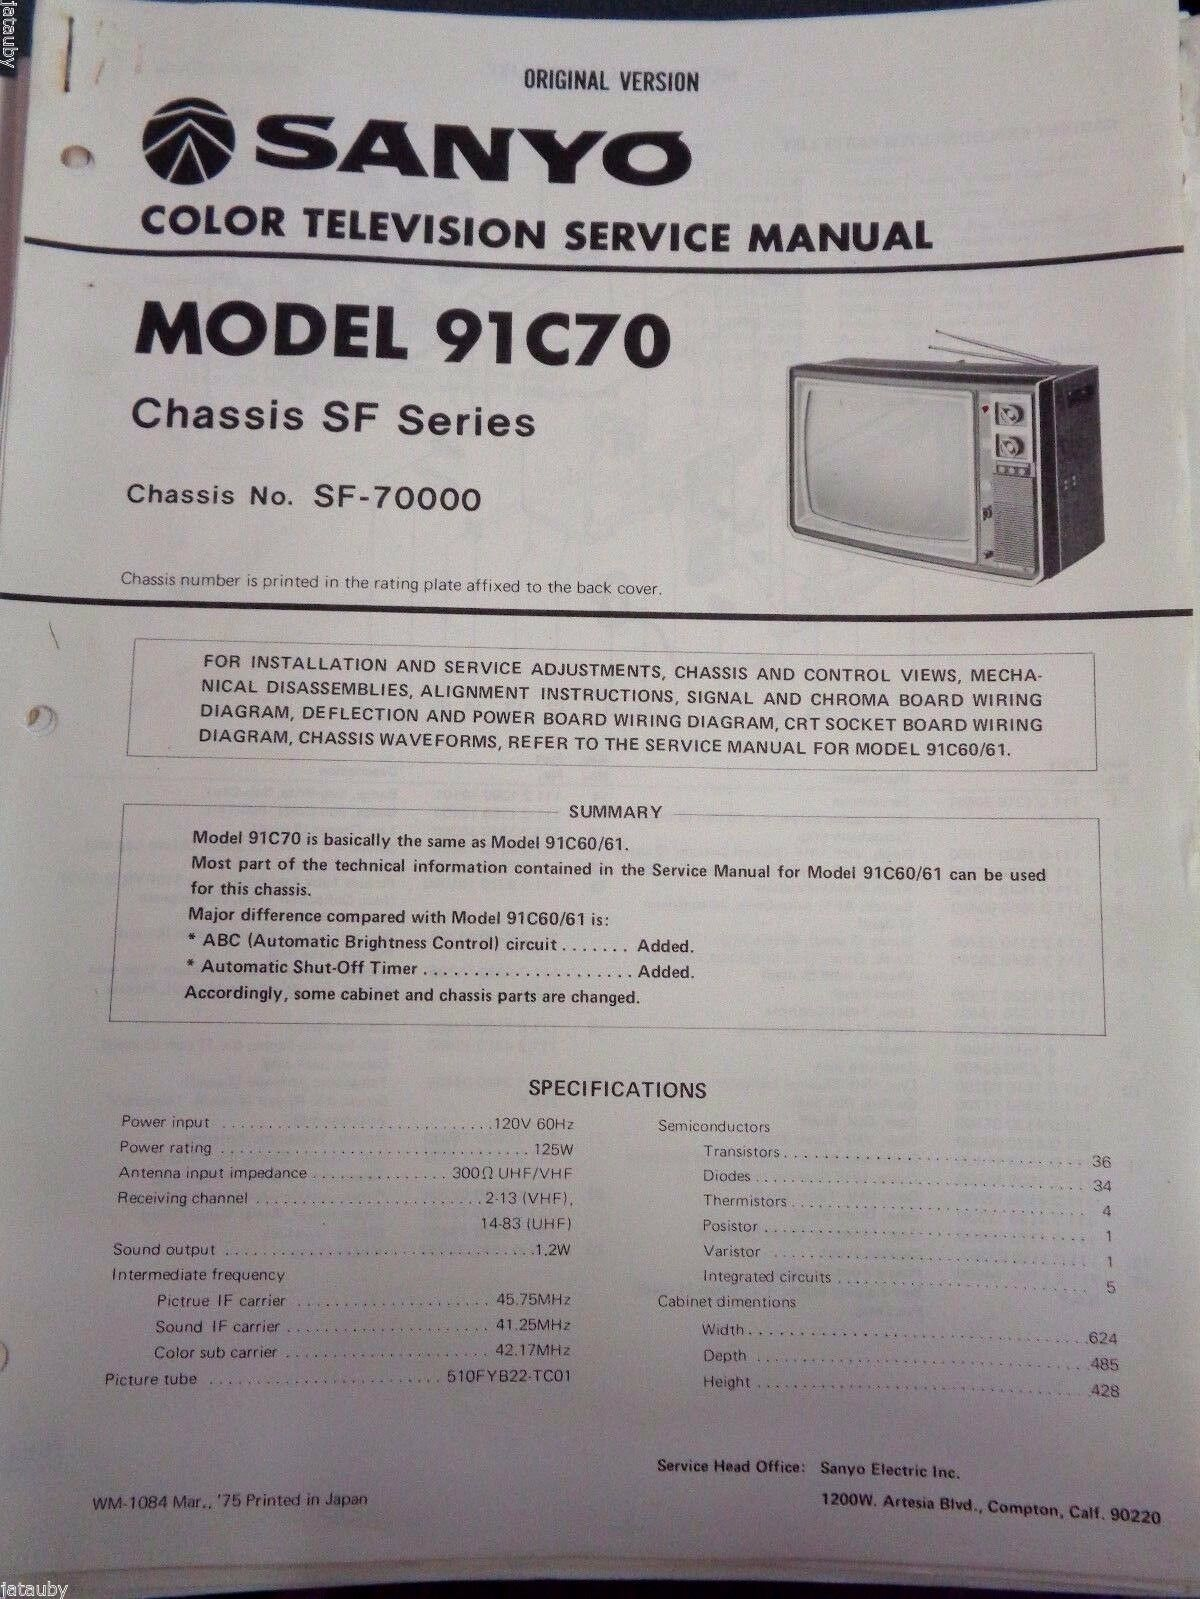 Sanyo Vintage Original Version Color Television Service Manual 91c70 Wiring Diagram 1 Of 1only Available